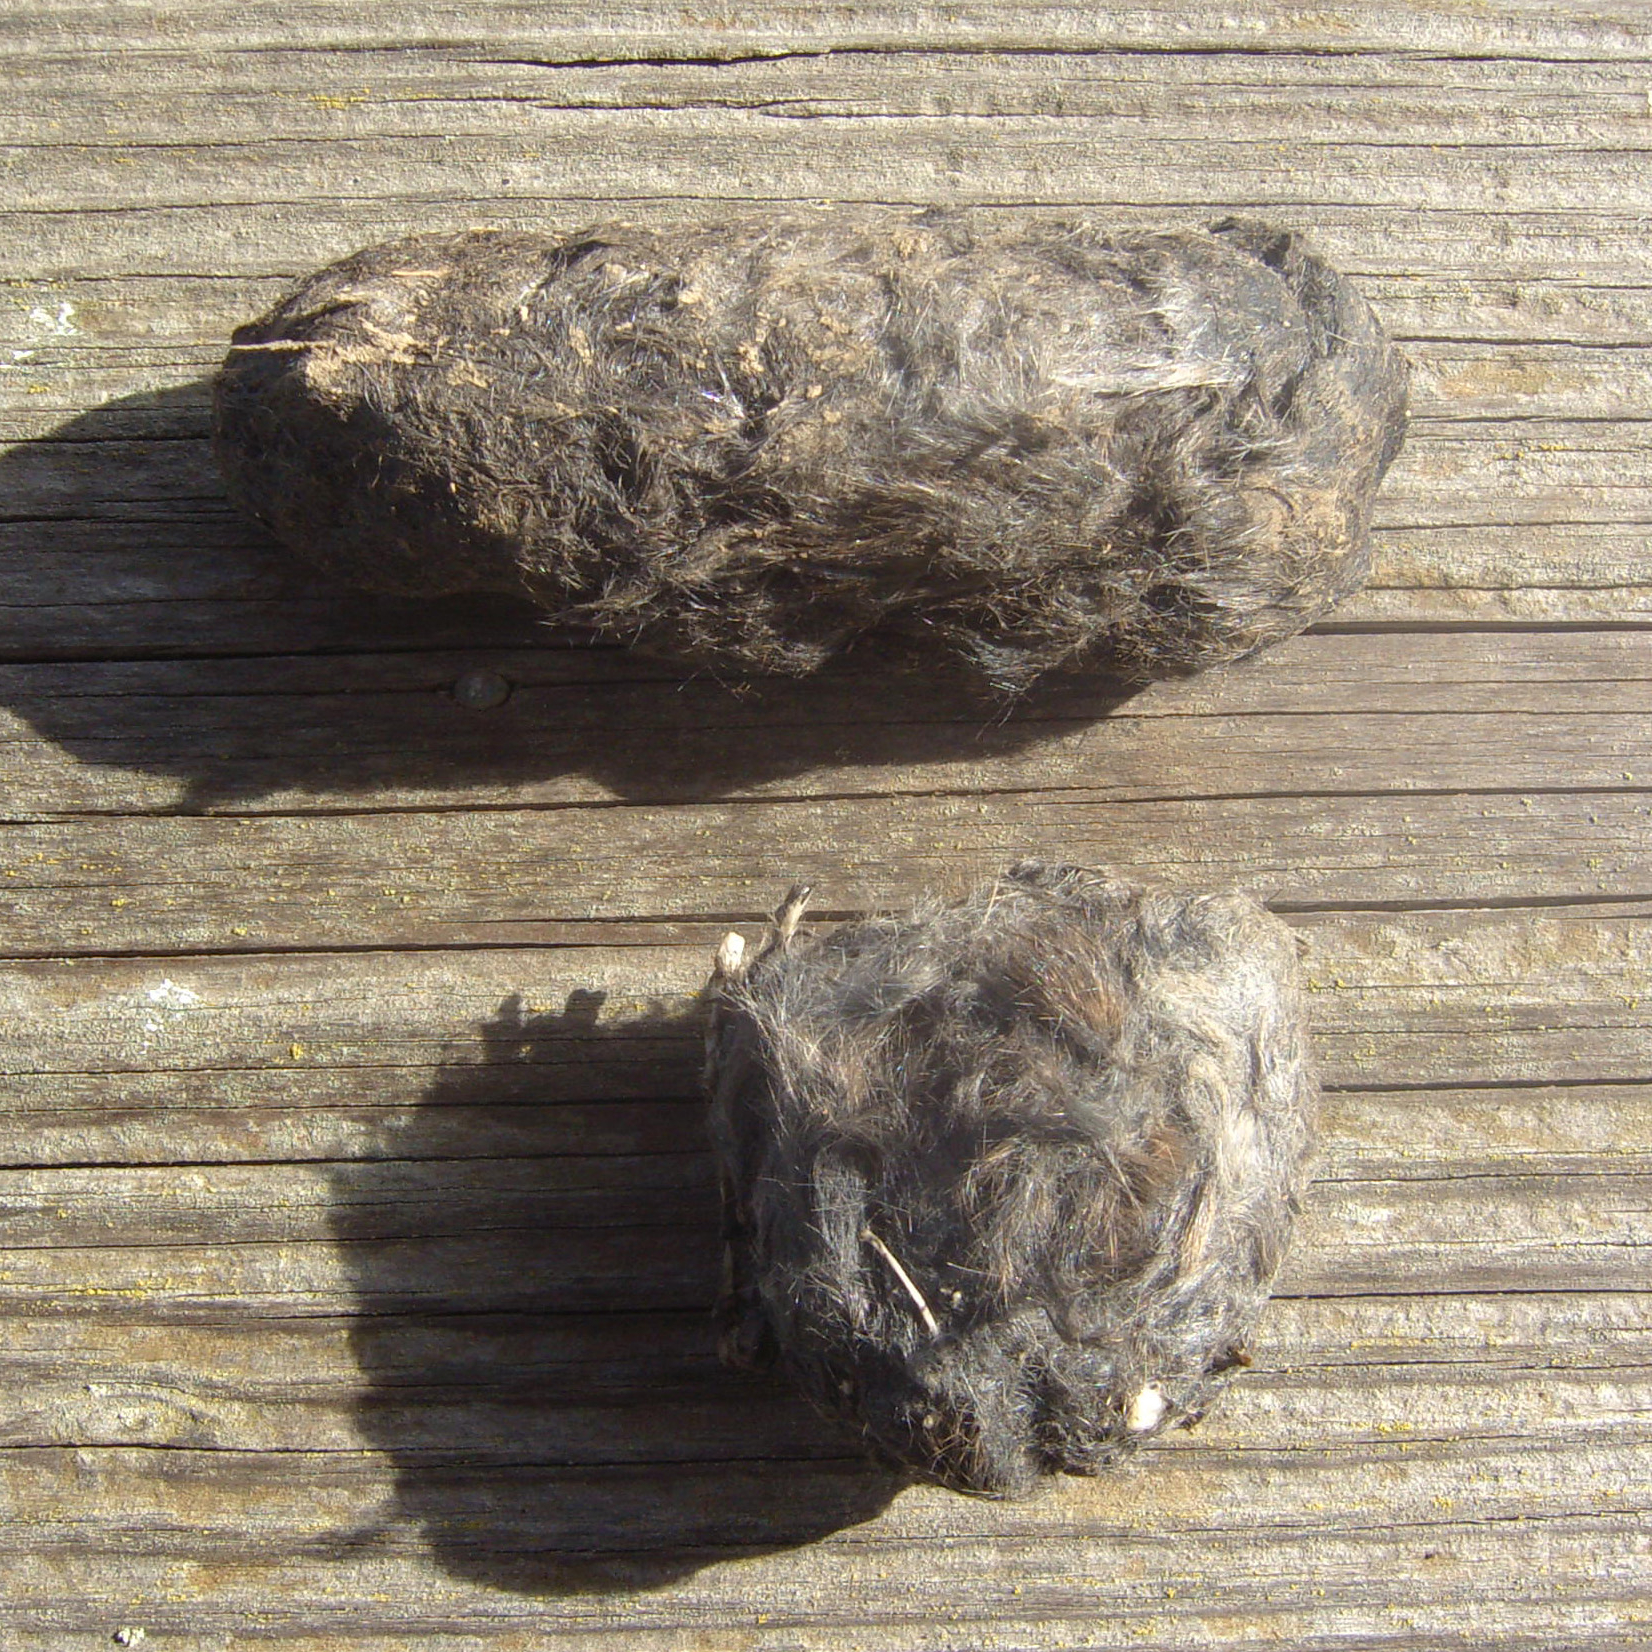 Pair of owl pellets